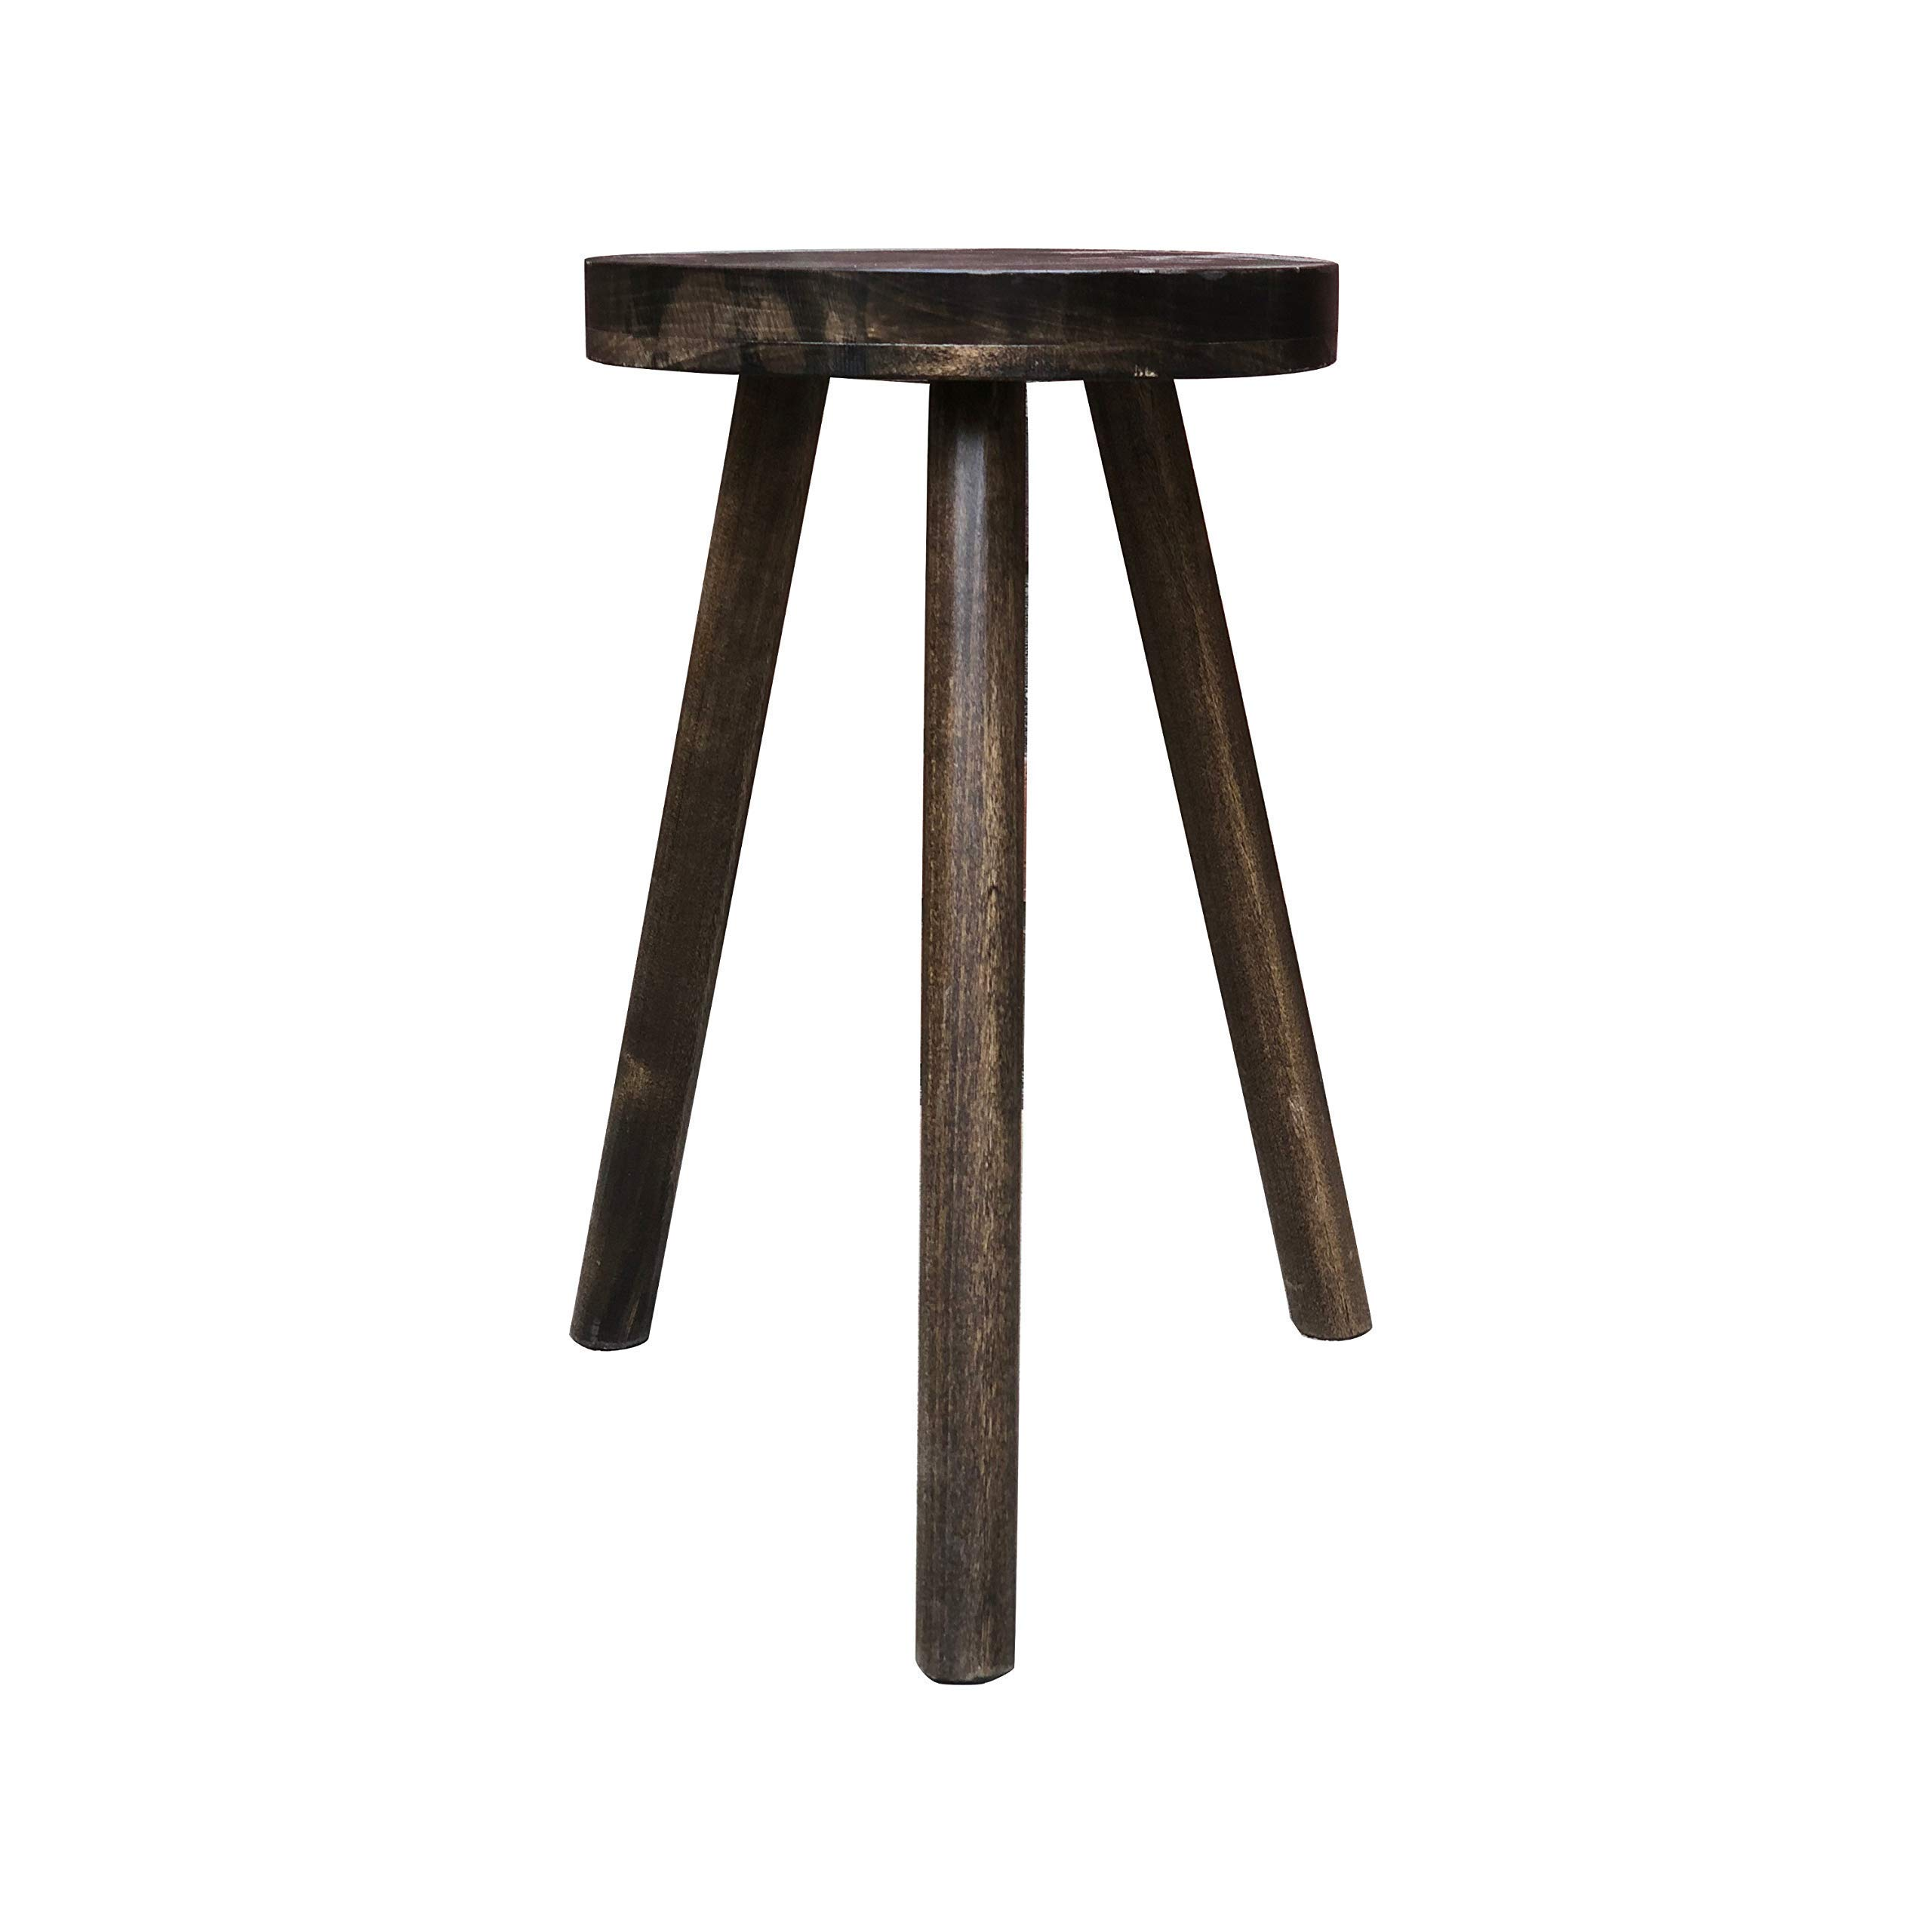 Modern Plant Stand Three Leg Stool Tall by CW Furniture Wood Indoor Flower Pot Base Display Holder Solid Wooden Kids Chair Table Simple Minimalist by Candlewood Furniture